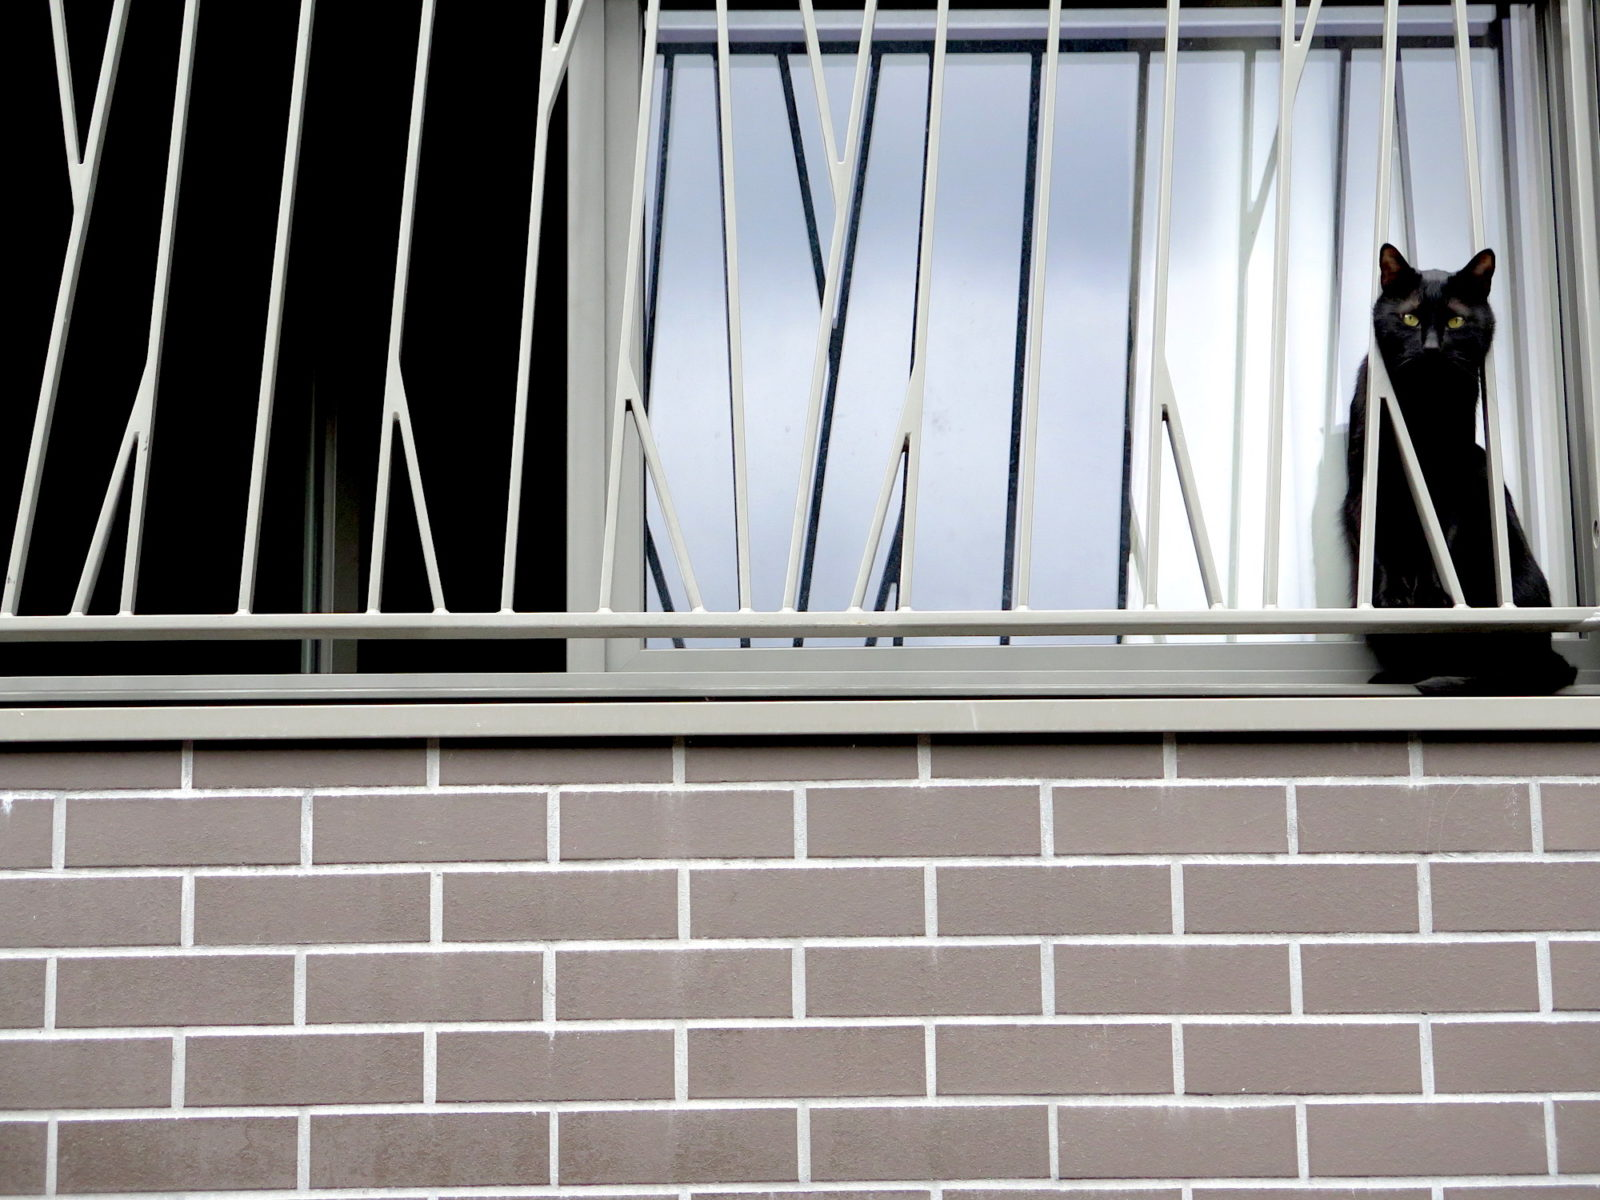 A black cat sitting on a window sill in Paris with its head stuck between the contemporary iron railings.